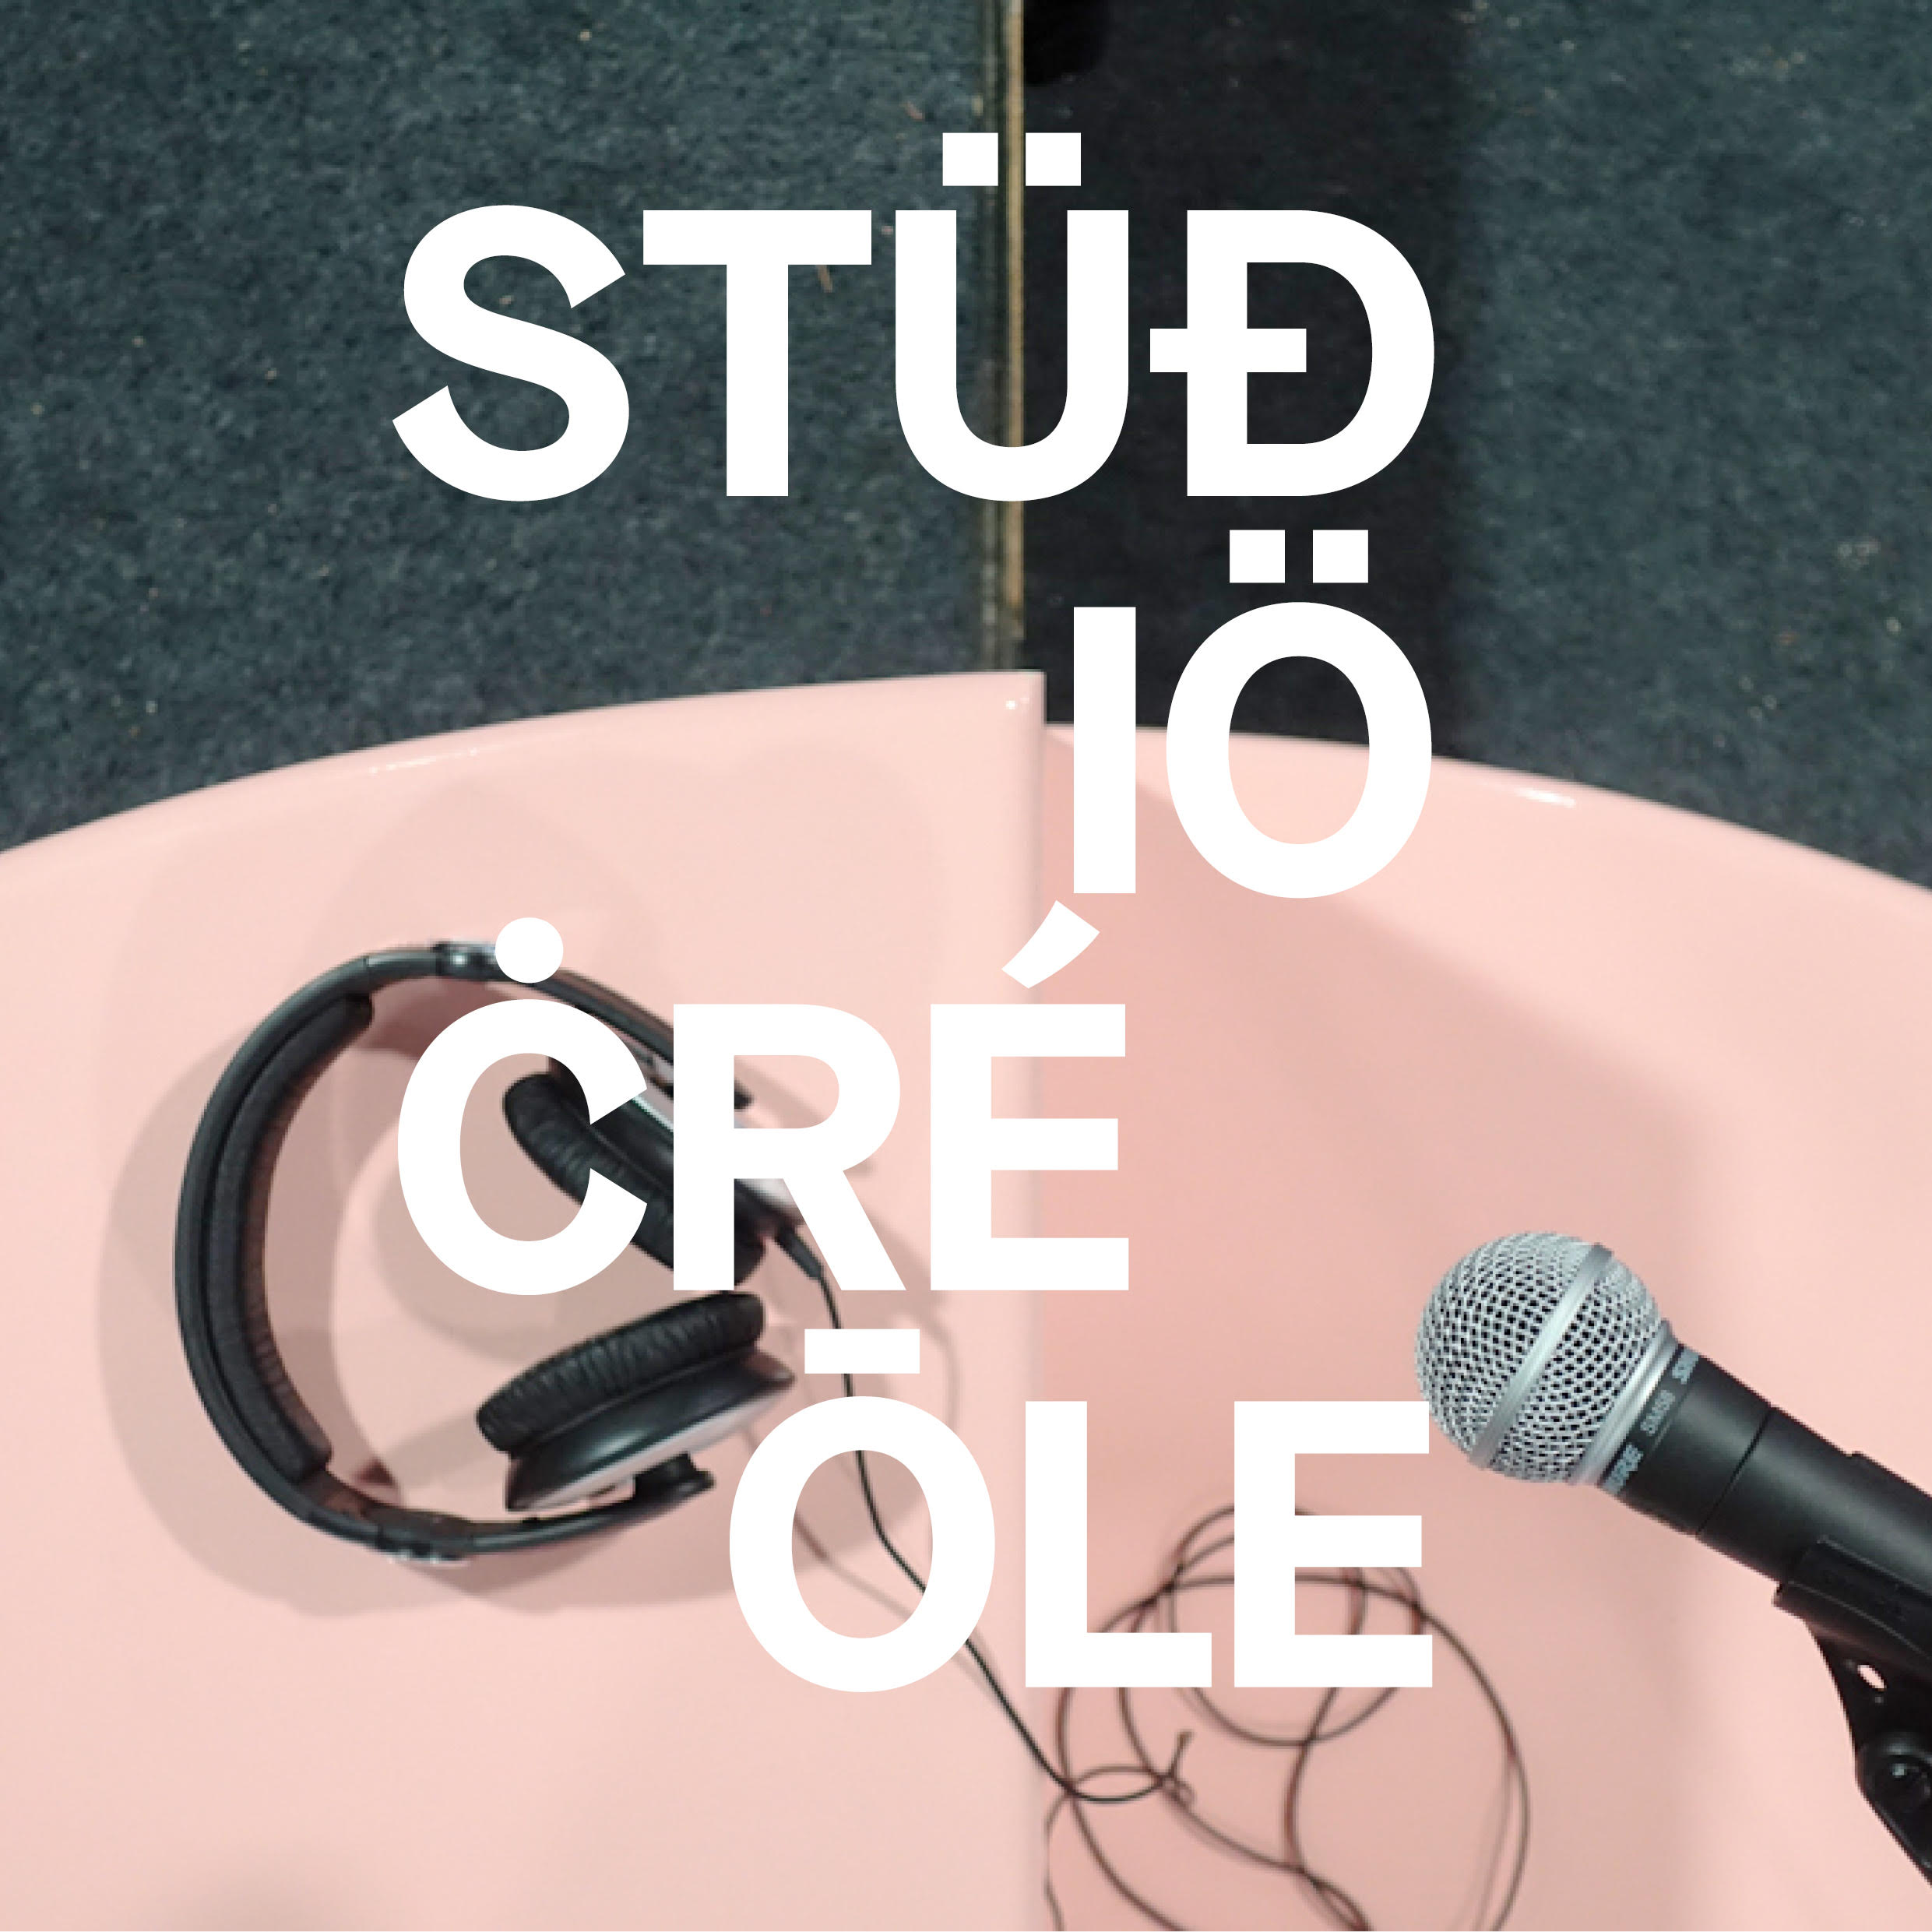 Studio Créole. at the Manchester International Festival 2019. sound design.  https://mif.co.uk/whats-on/studio-creole/